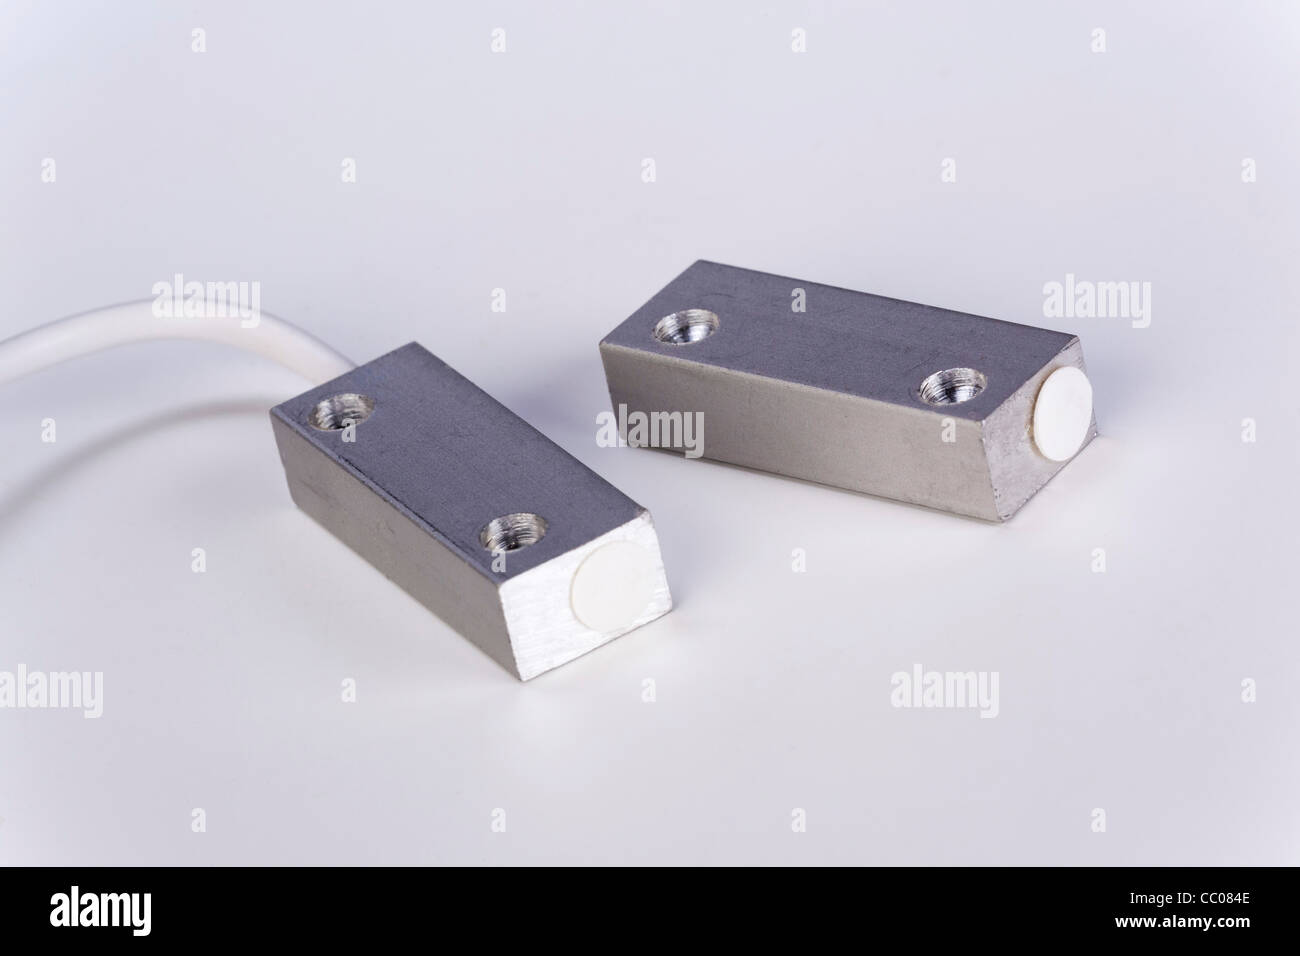 magnetic reed switch sensor and magnet - Stock Image